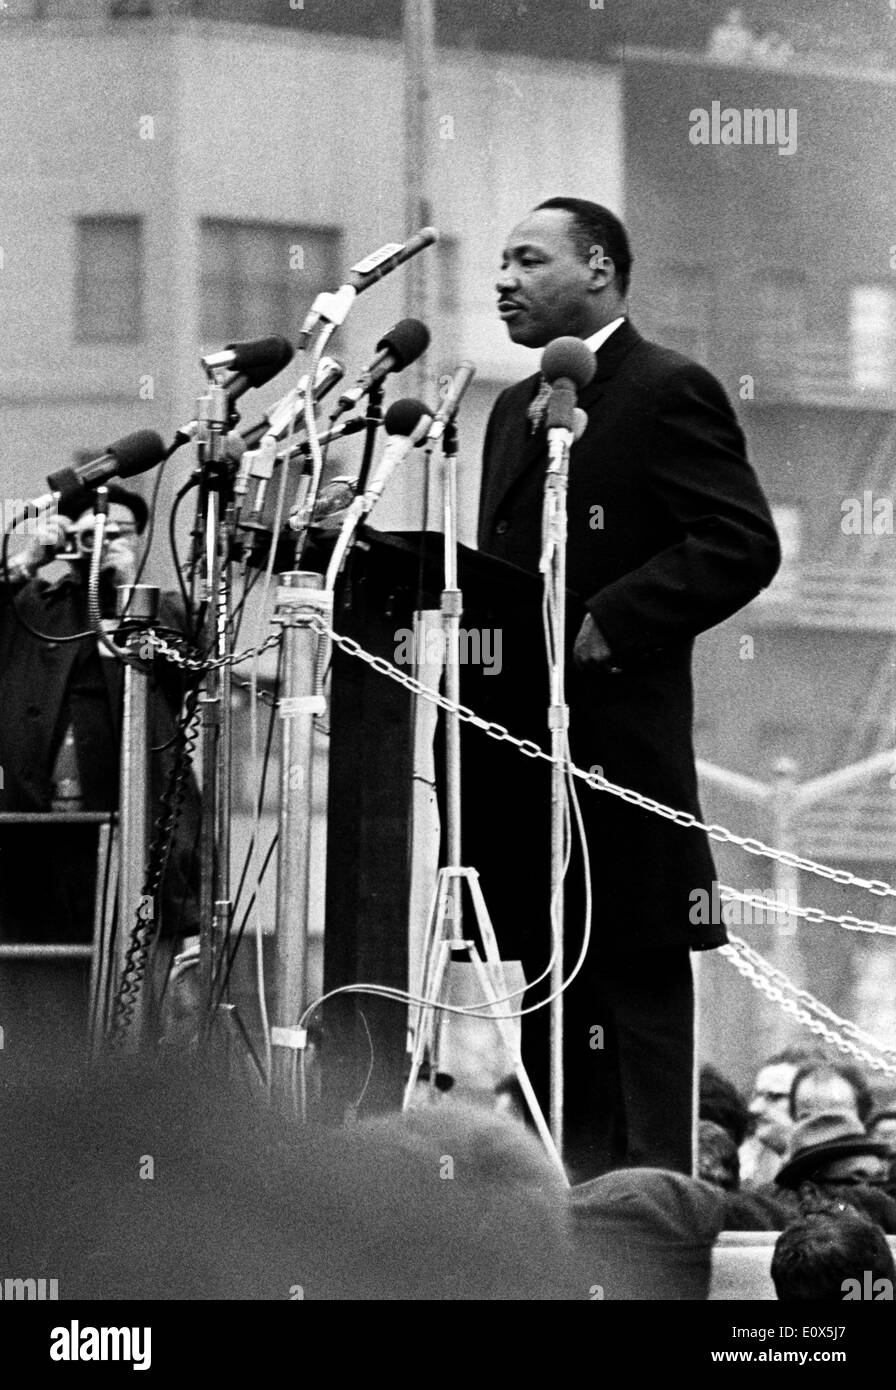 Martin Luther King Jr Giving A Speech In New York City Stock Photo